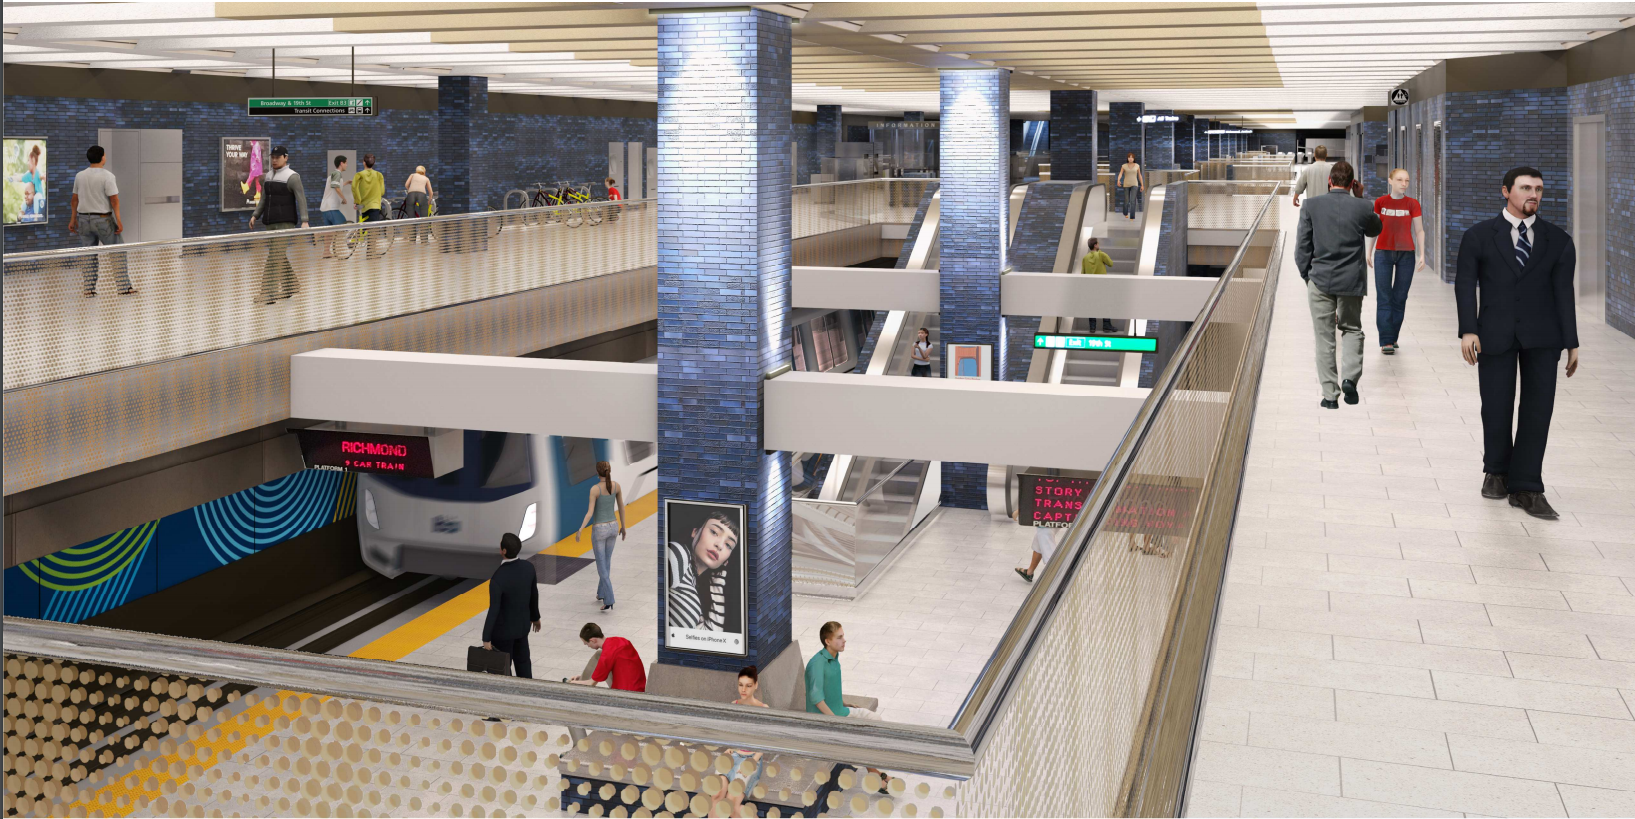 19th St Station Modernization rendering concourse and platform